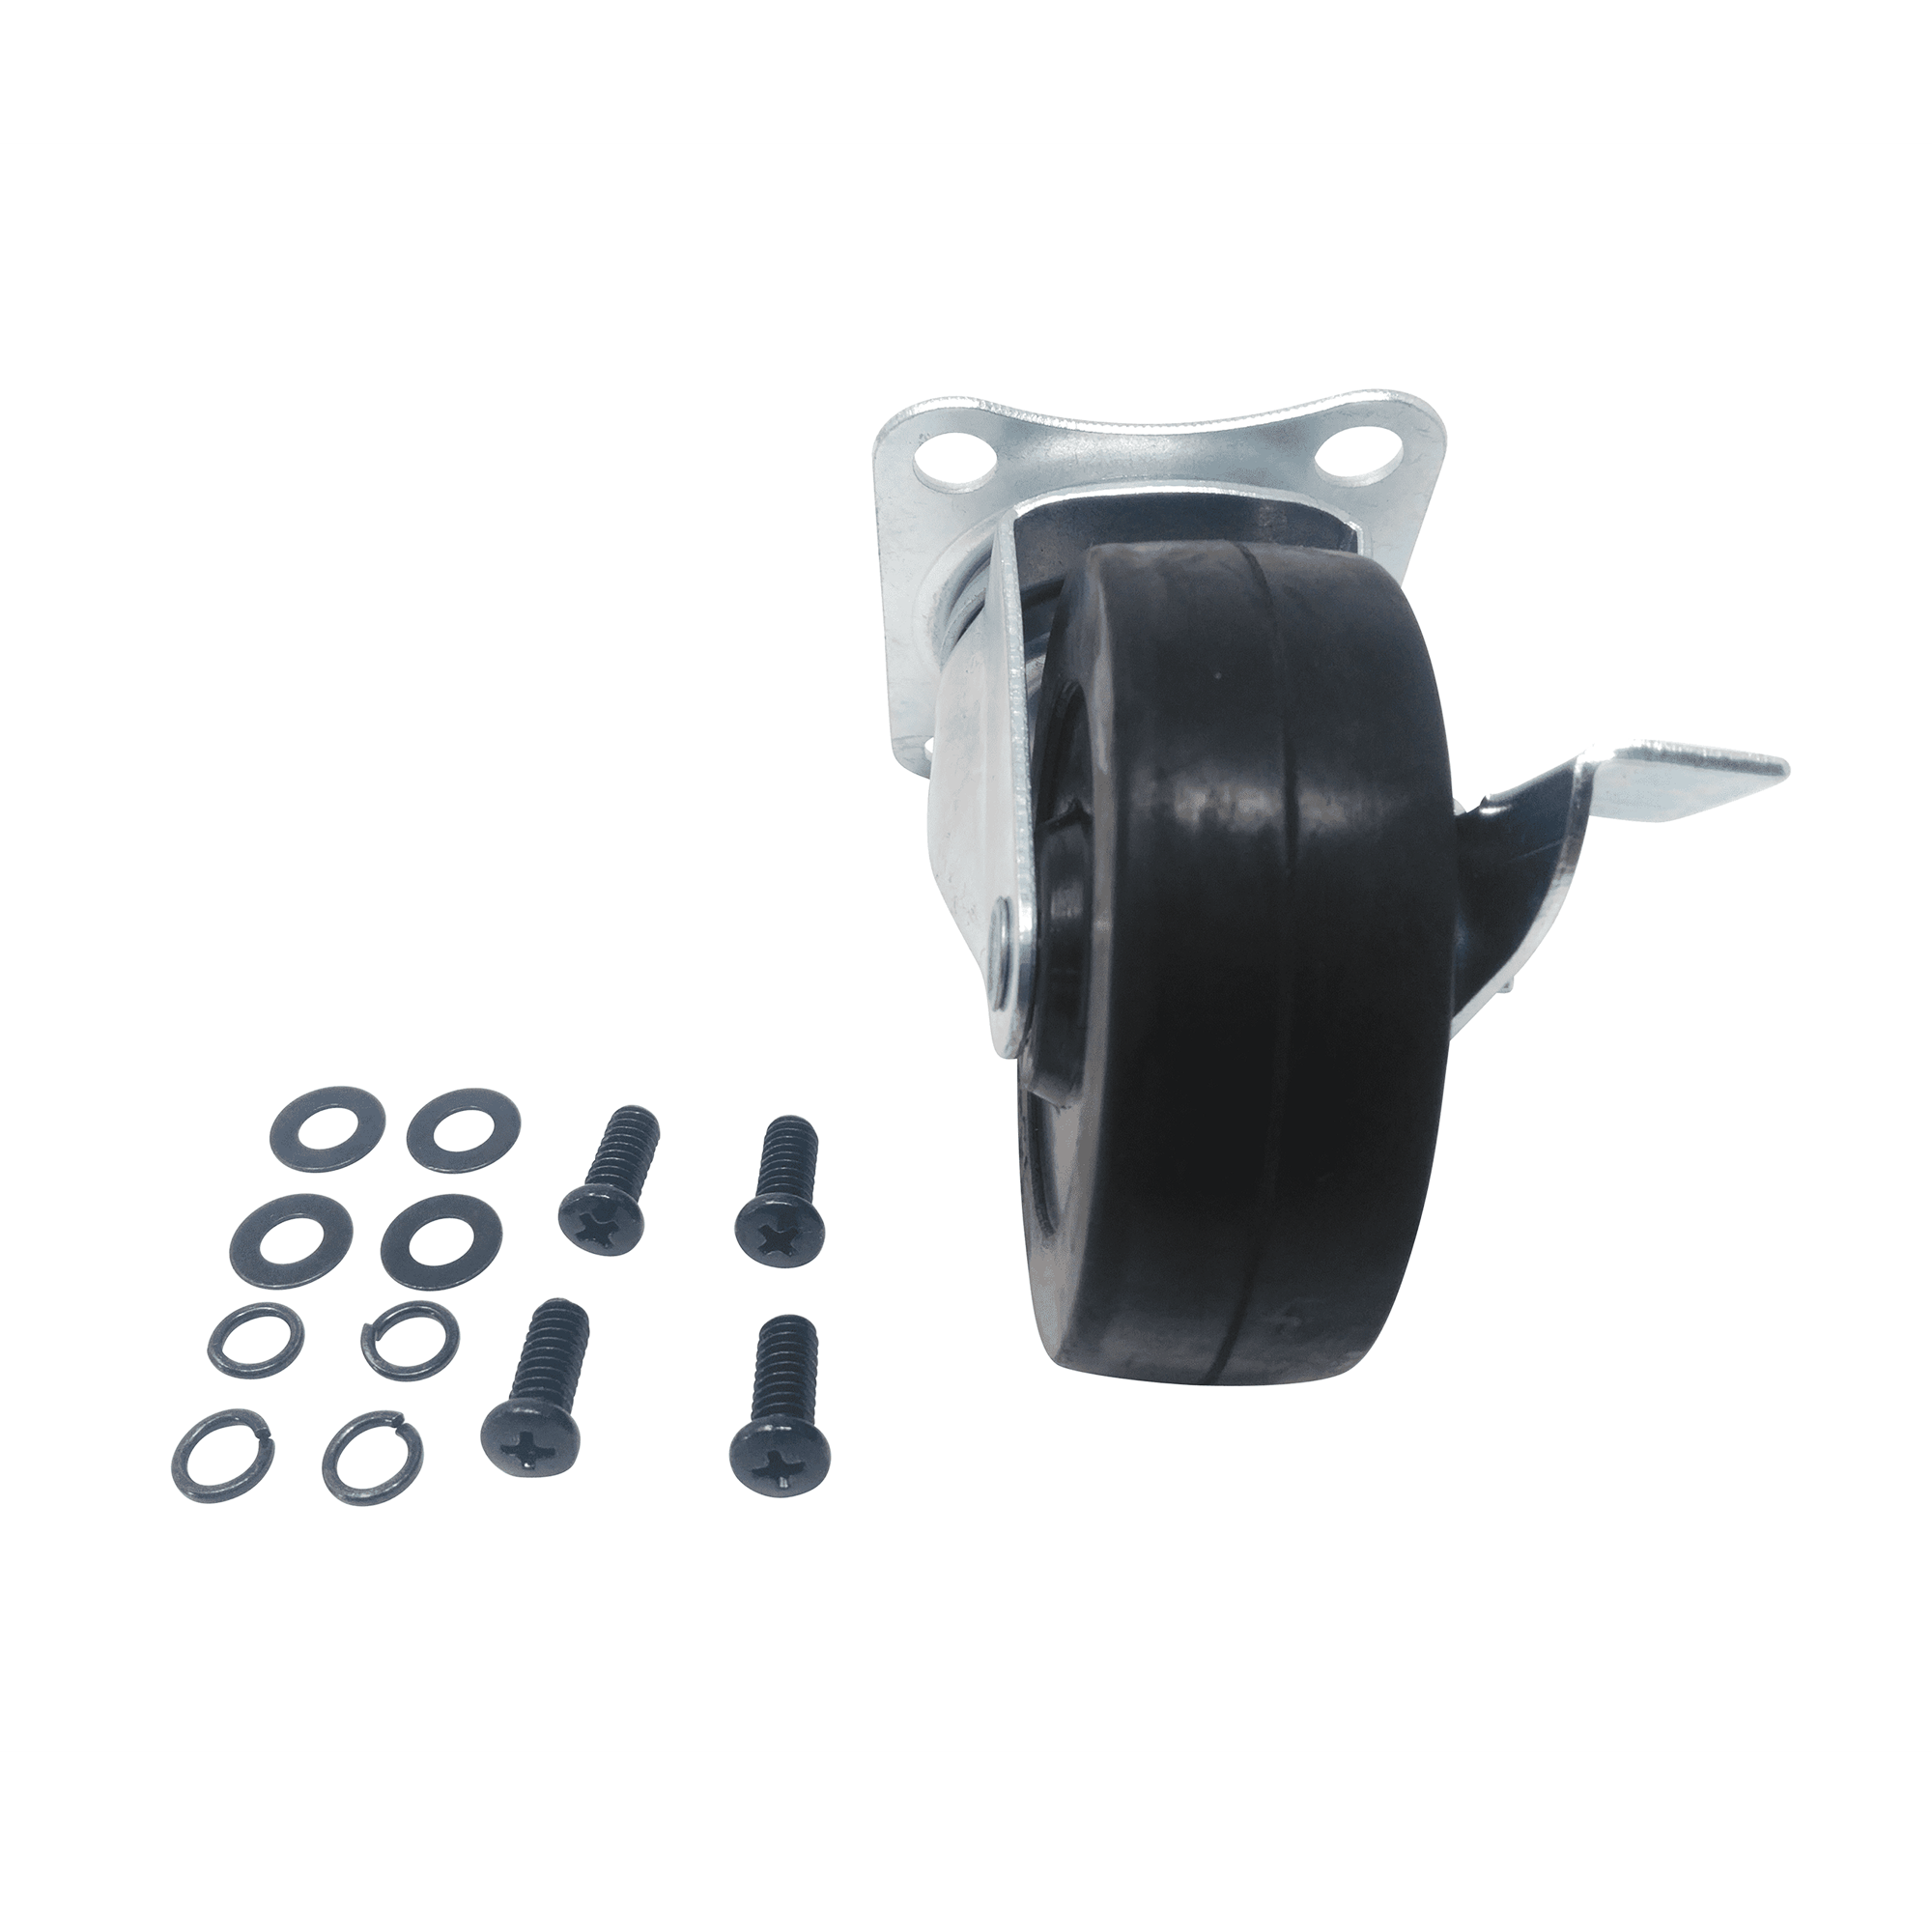 HDW0051 | Traeger Swivel Caster Wheel(KIT0084)  HDW051